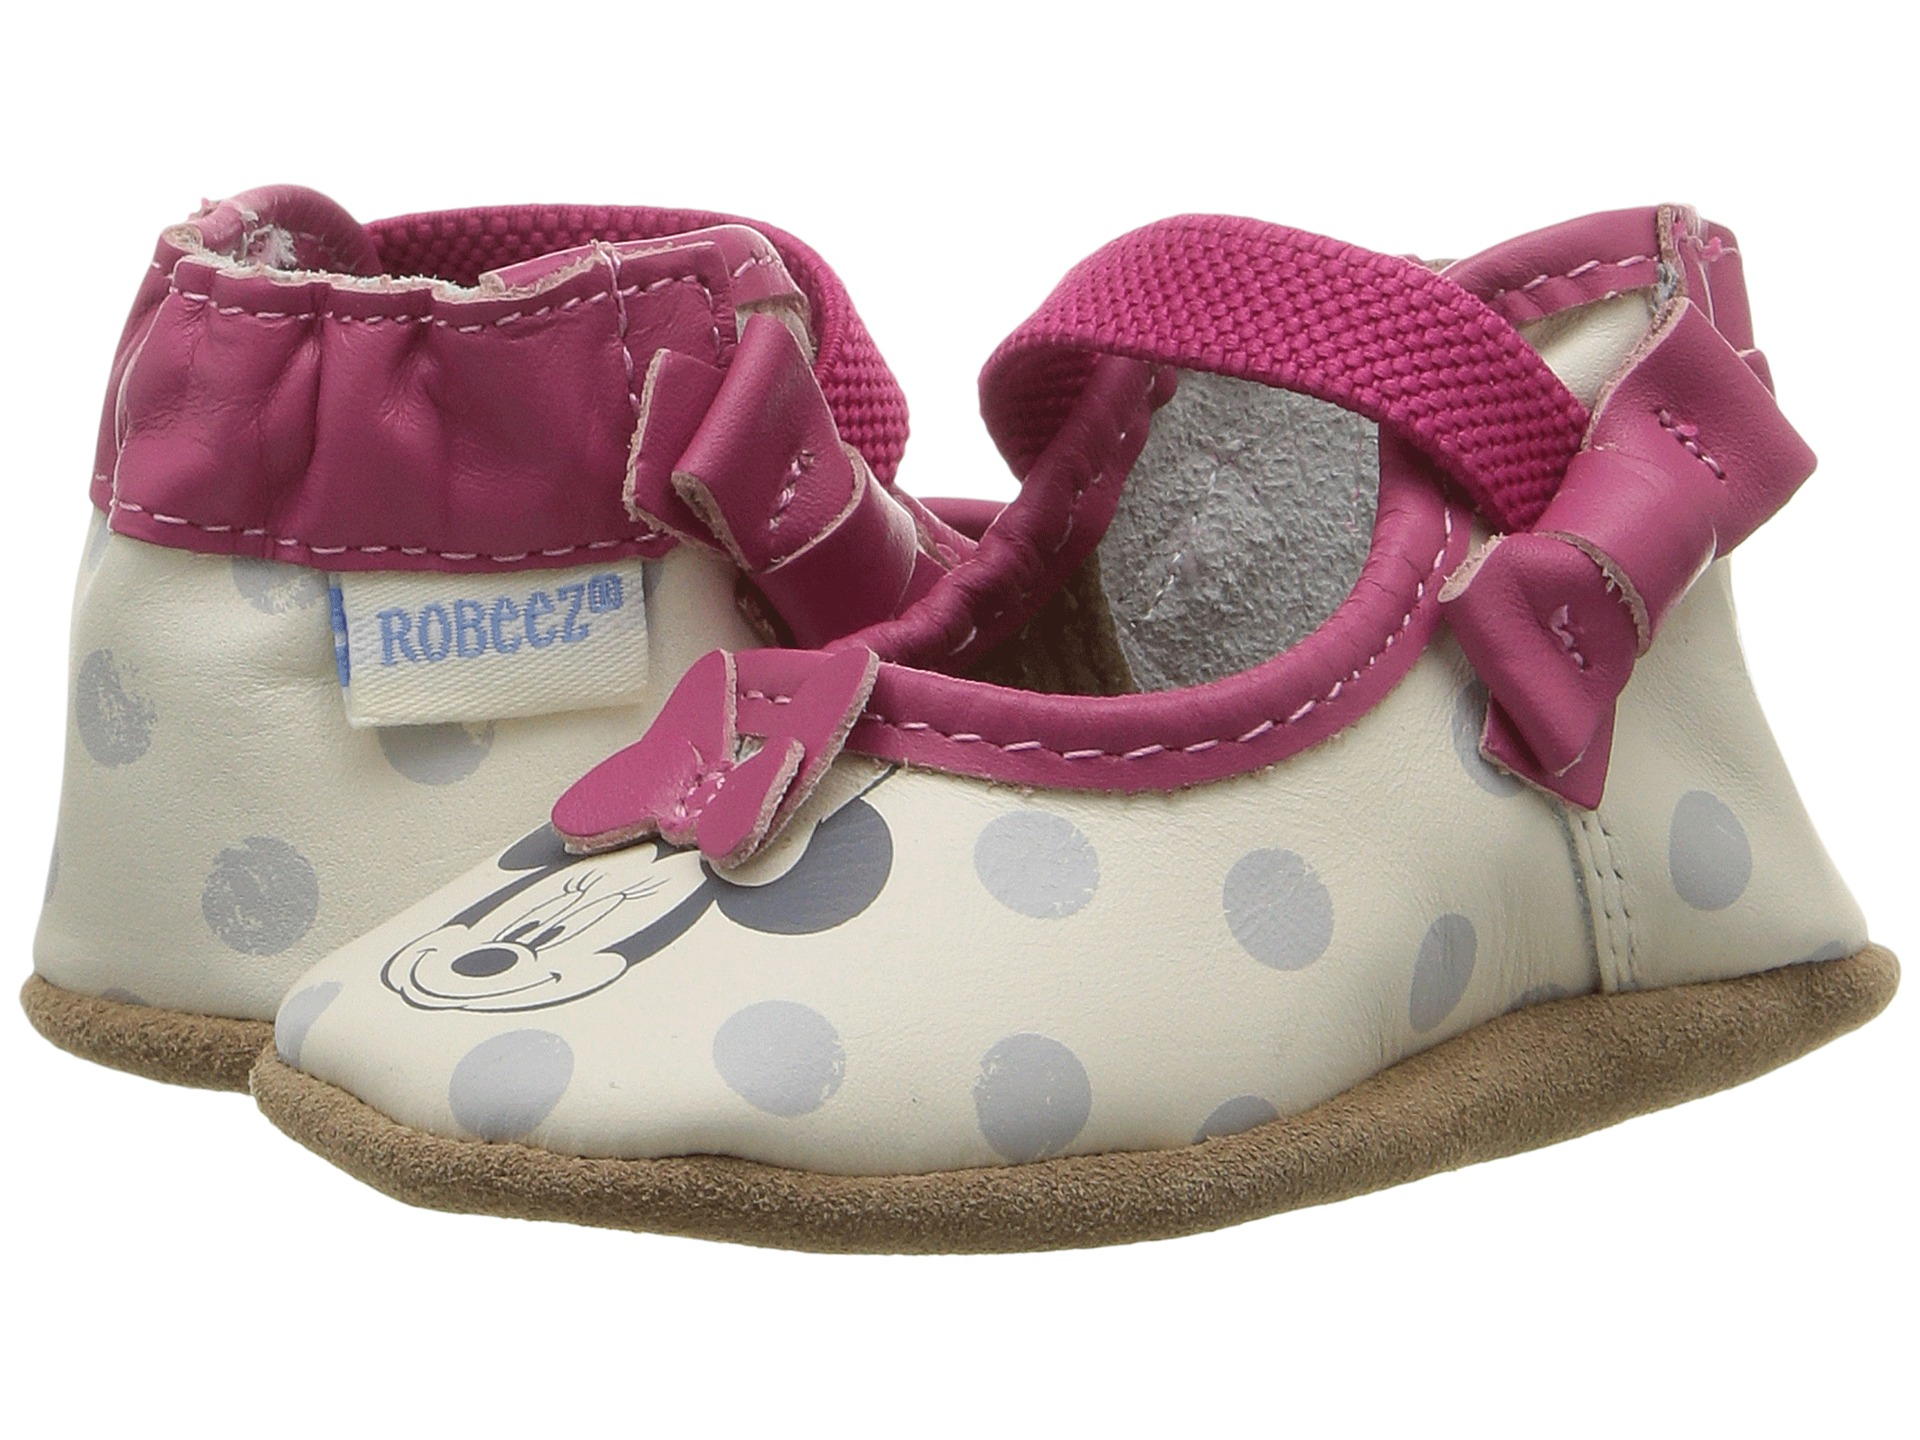 Robeez is committed to the healthy development of little feet. Robeez Classic Moccasin Crib Shoe (Infant) by Robeez. $ - $ $ 17 $ 32 07 Prime. FREE Shipping on eligible orders. Some sizes/colors are Prime eligible. out of 5 stars Robeez Girls' Low Top Sneaker - Mini Shoez.